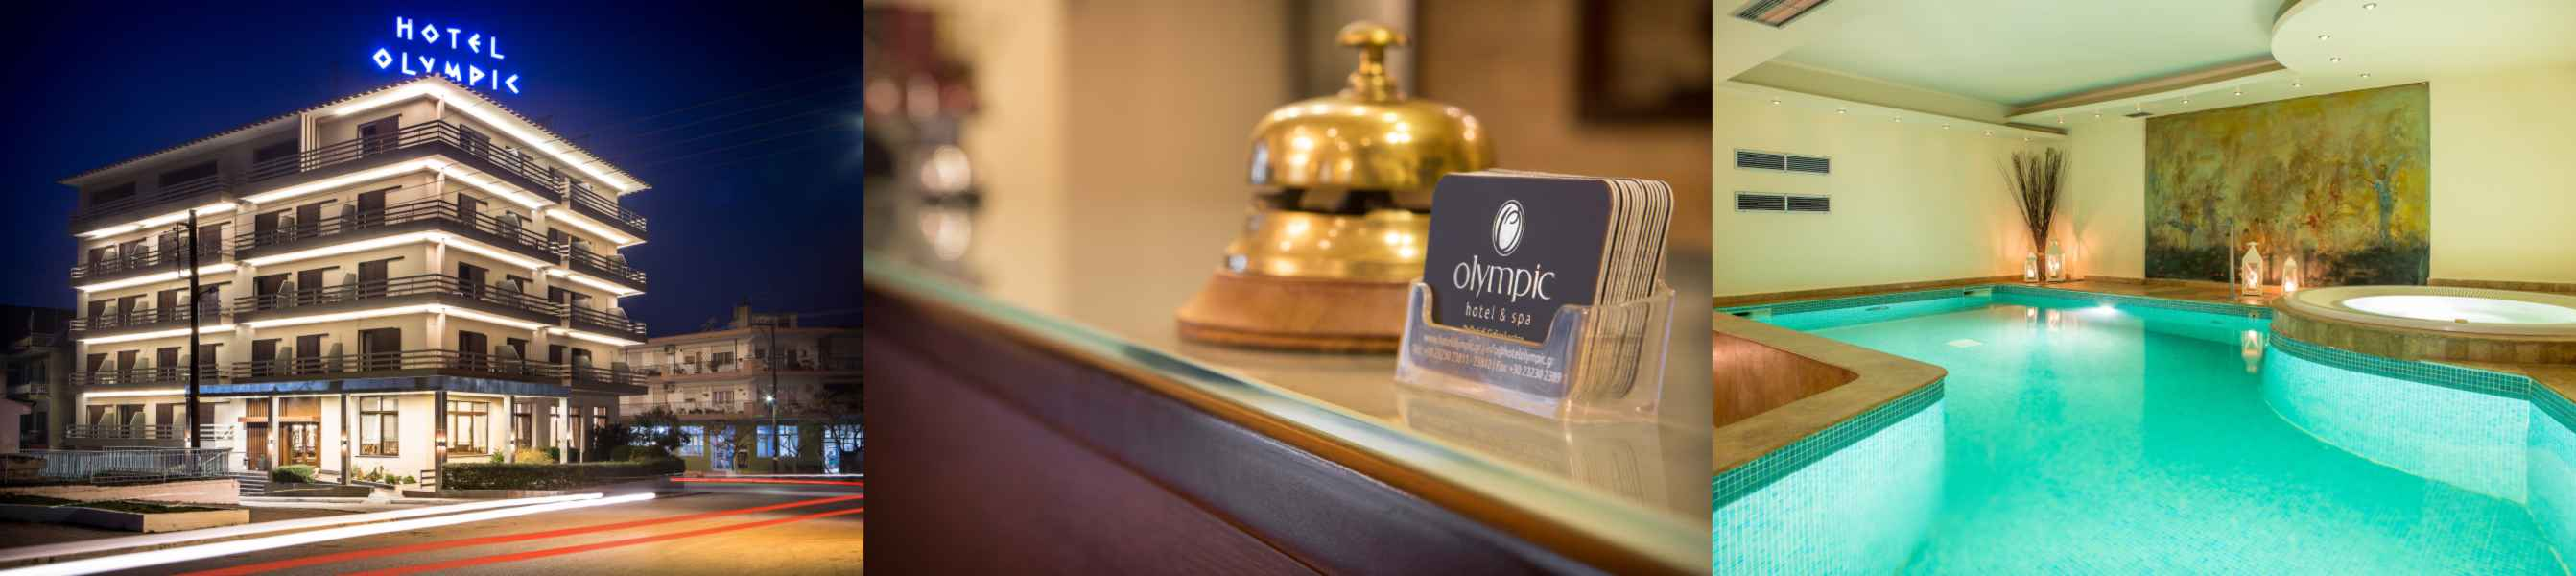 Hotel Olympic & SPA